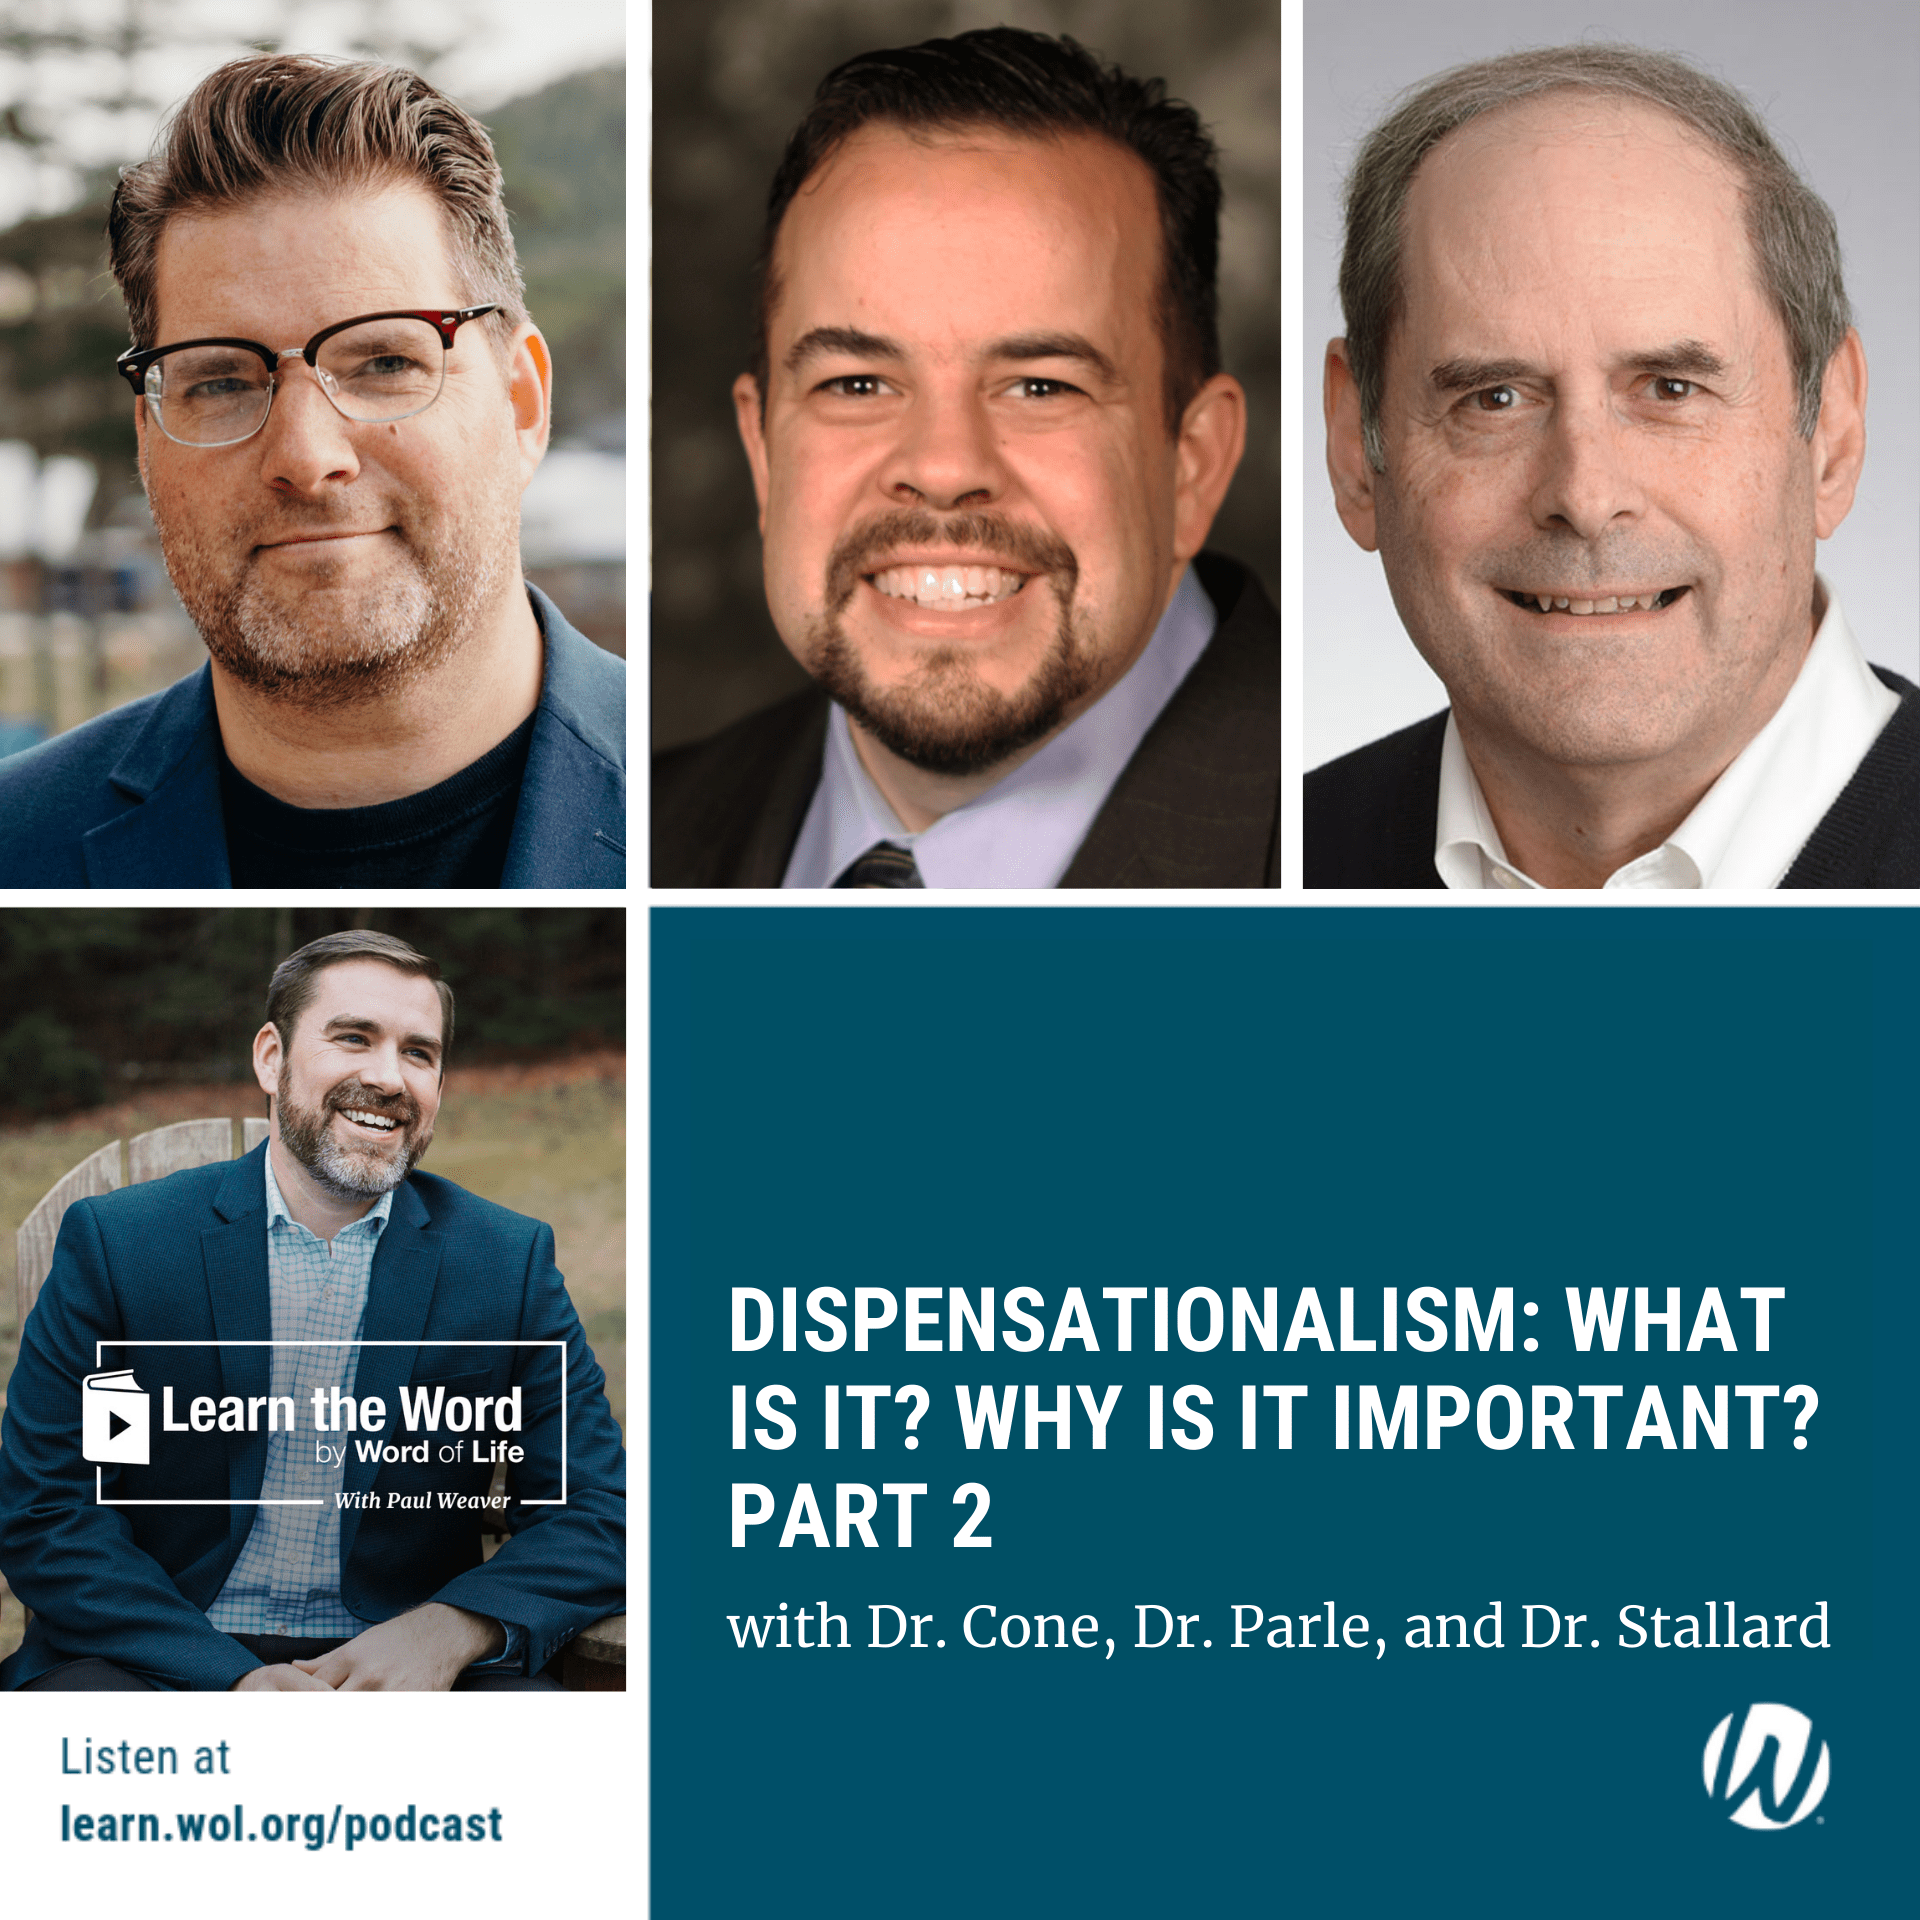 Title LTW162 - Dispensationalism: What is it? Why is it important? - Part 2 with Dr. Cone, Dr. Parle, and Dr. Stallard